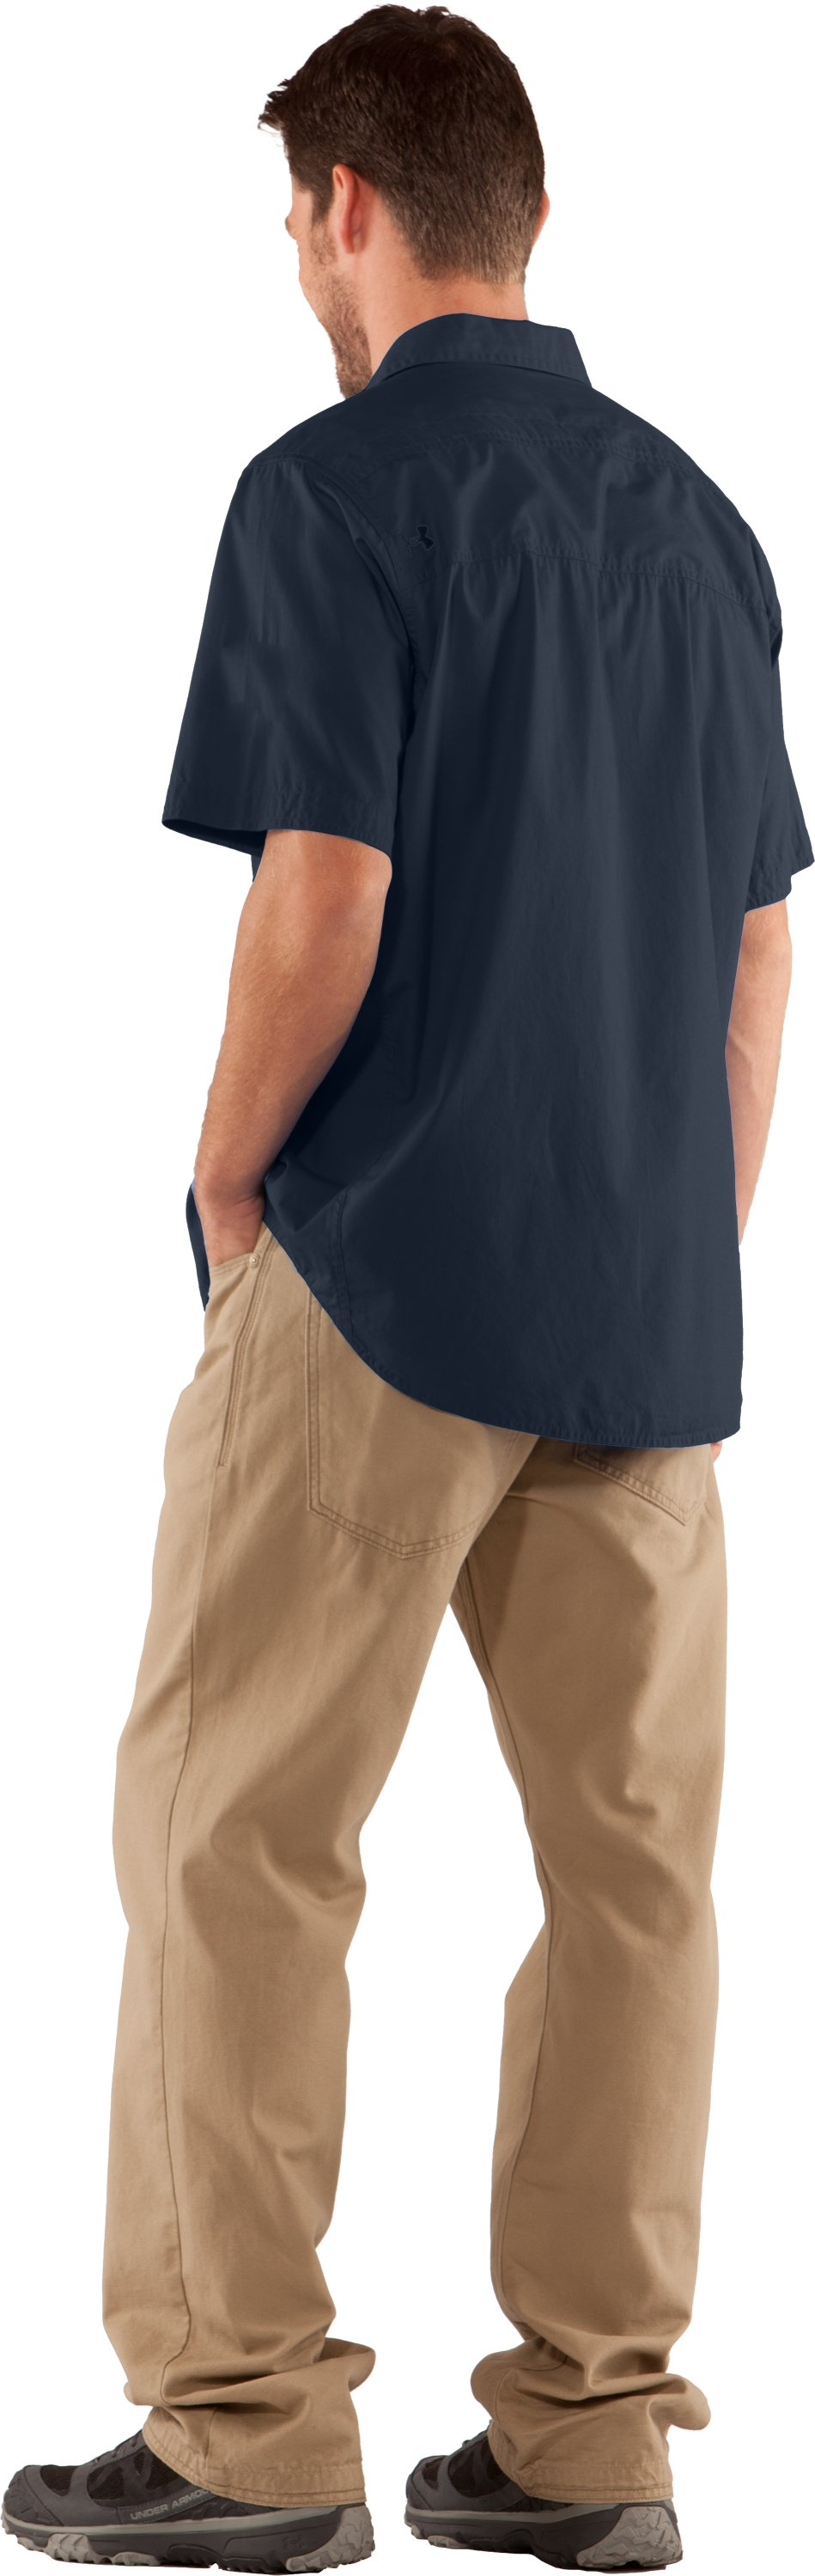 Men's Charged Cotton® Solid Short Sleeve, Cadet, Back